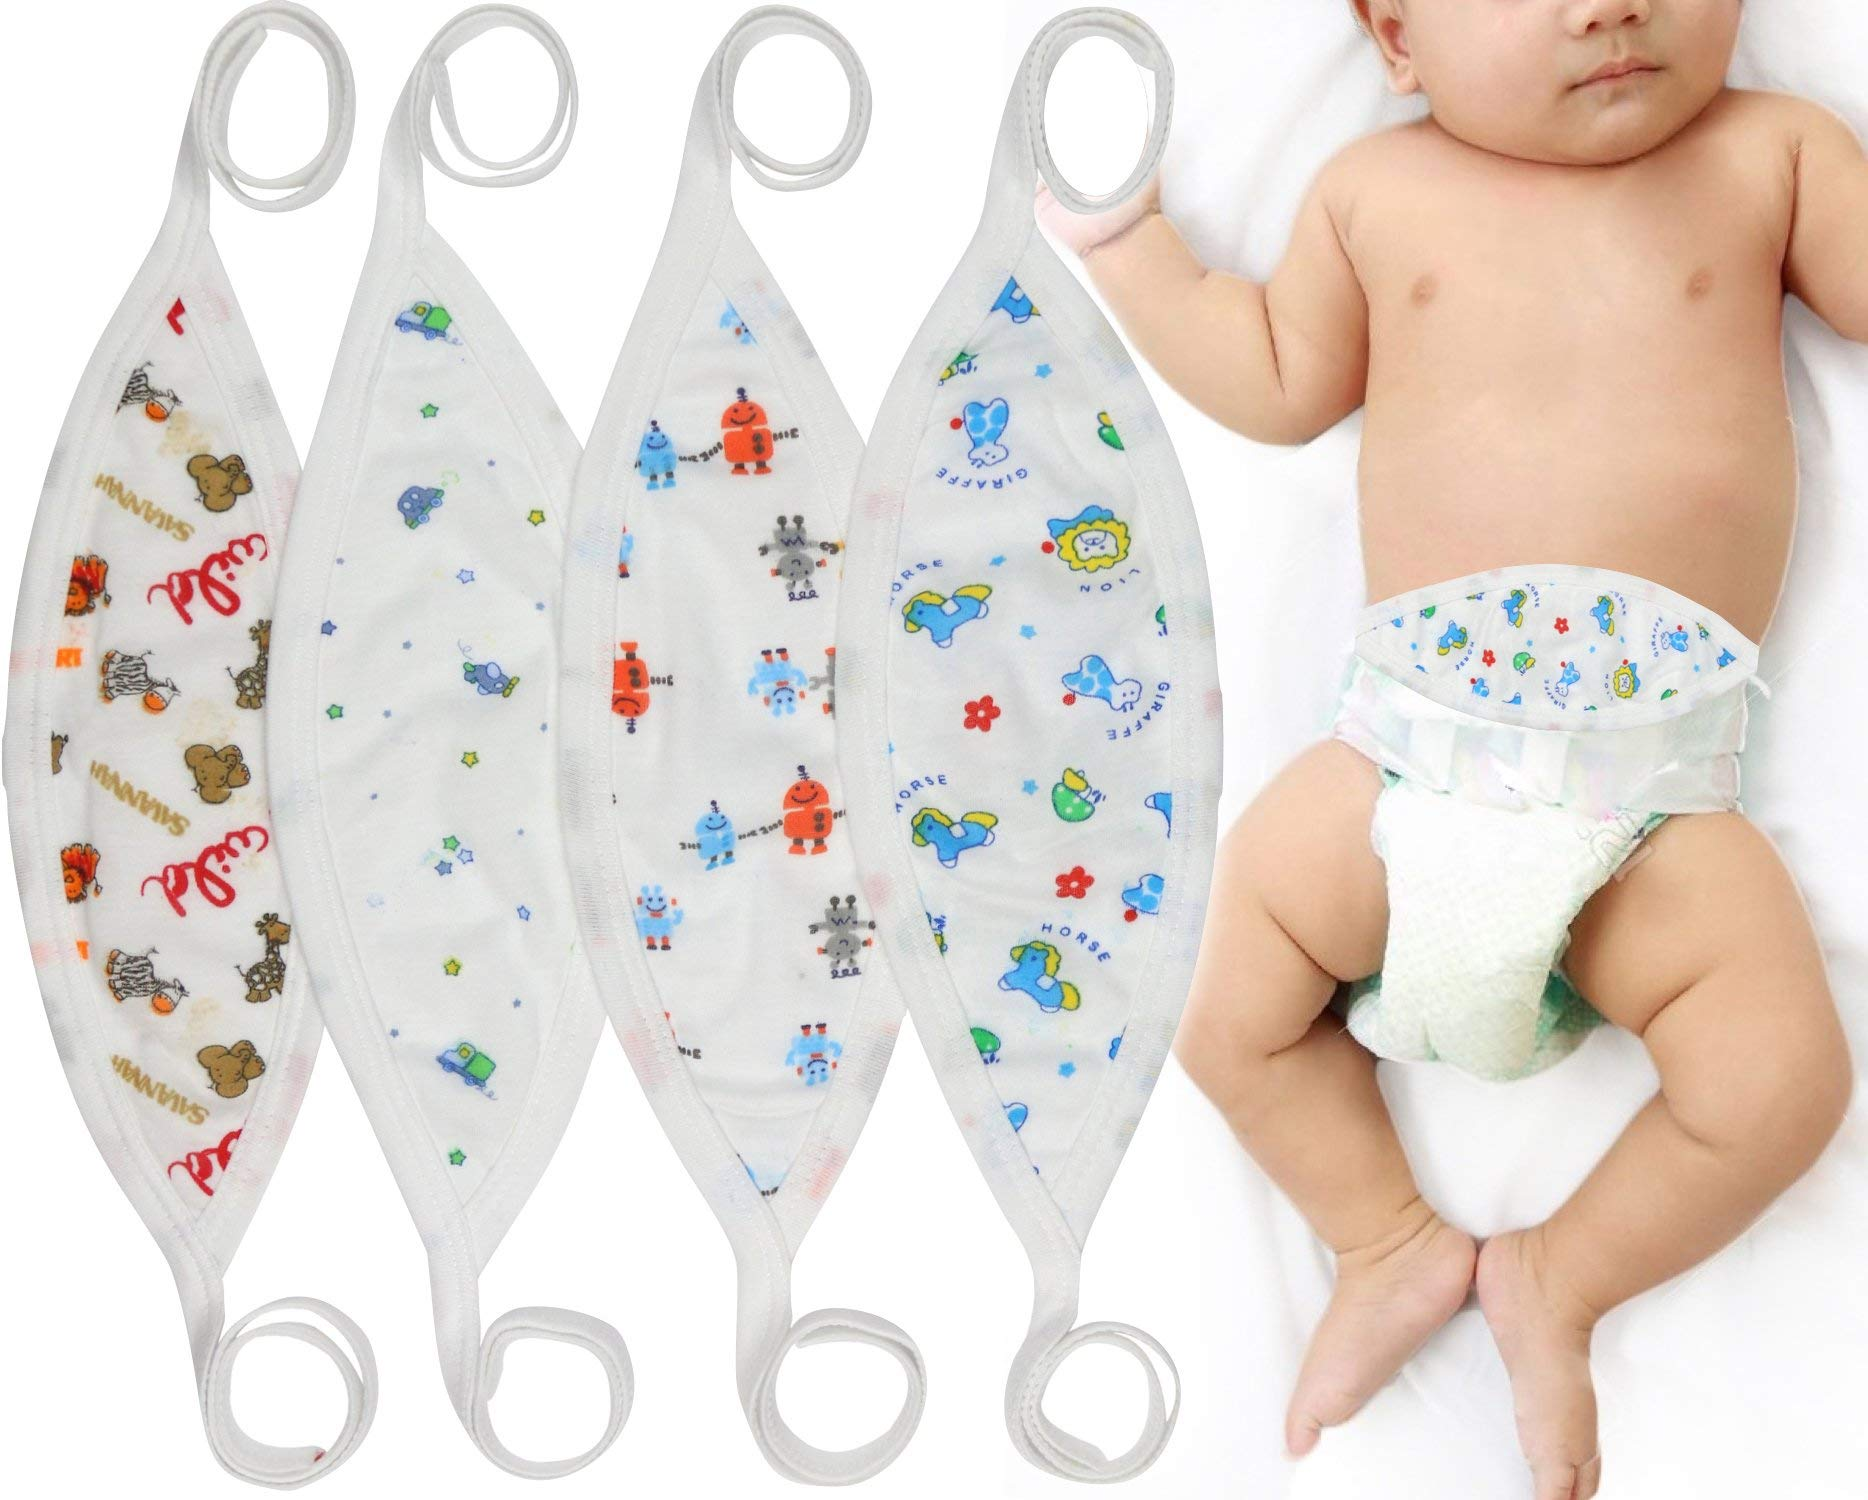 Random Color Liitrton 4 PCS Cartoon Pattern Cotton Baby Infant Umbilical Cord Belly Band for 0-12 months